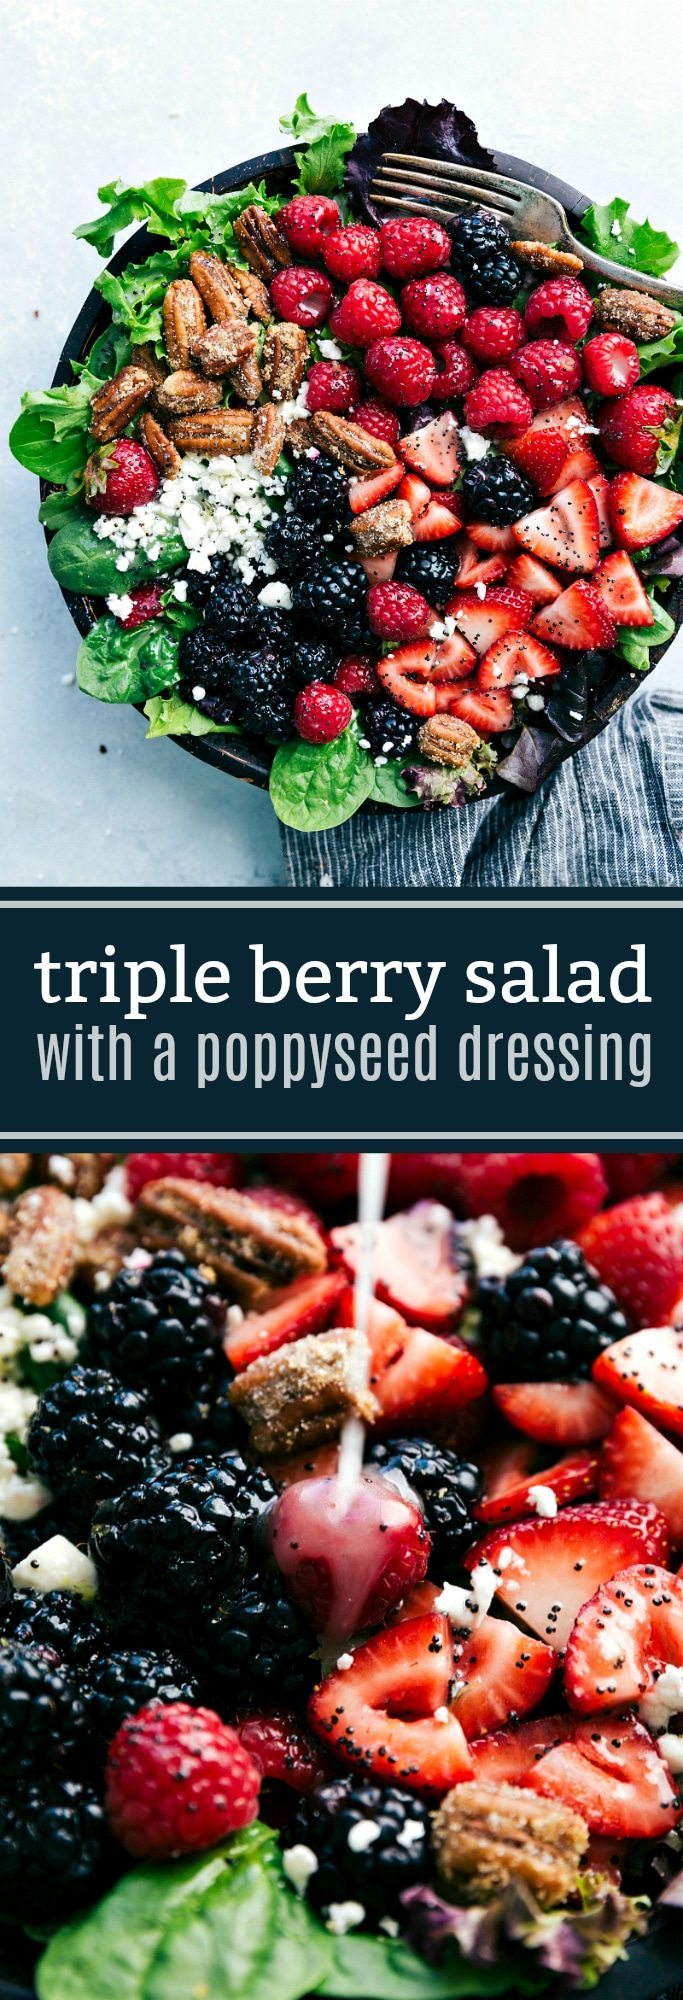 Triple Berry Spinach Salad with Candied Pecans - Chelsea's Messy Apron